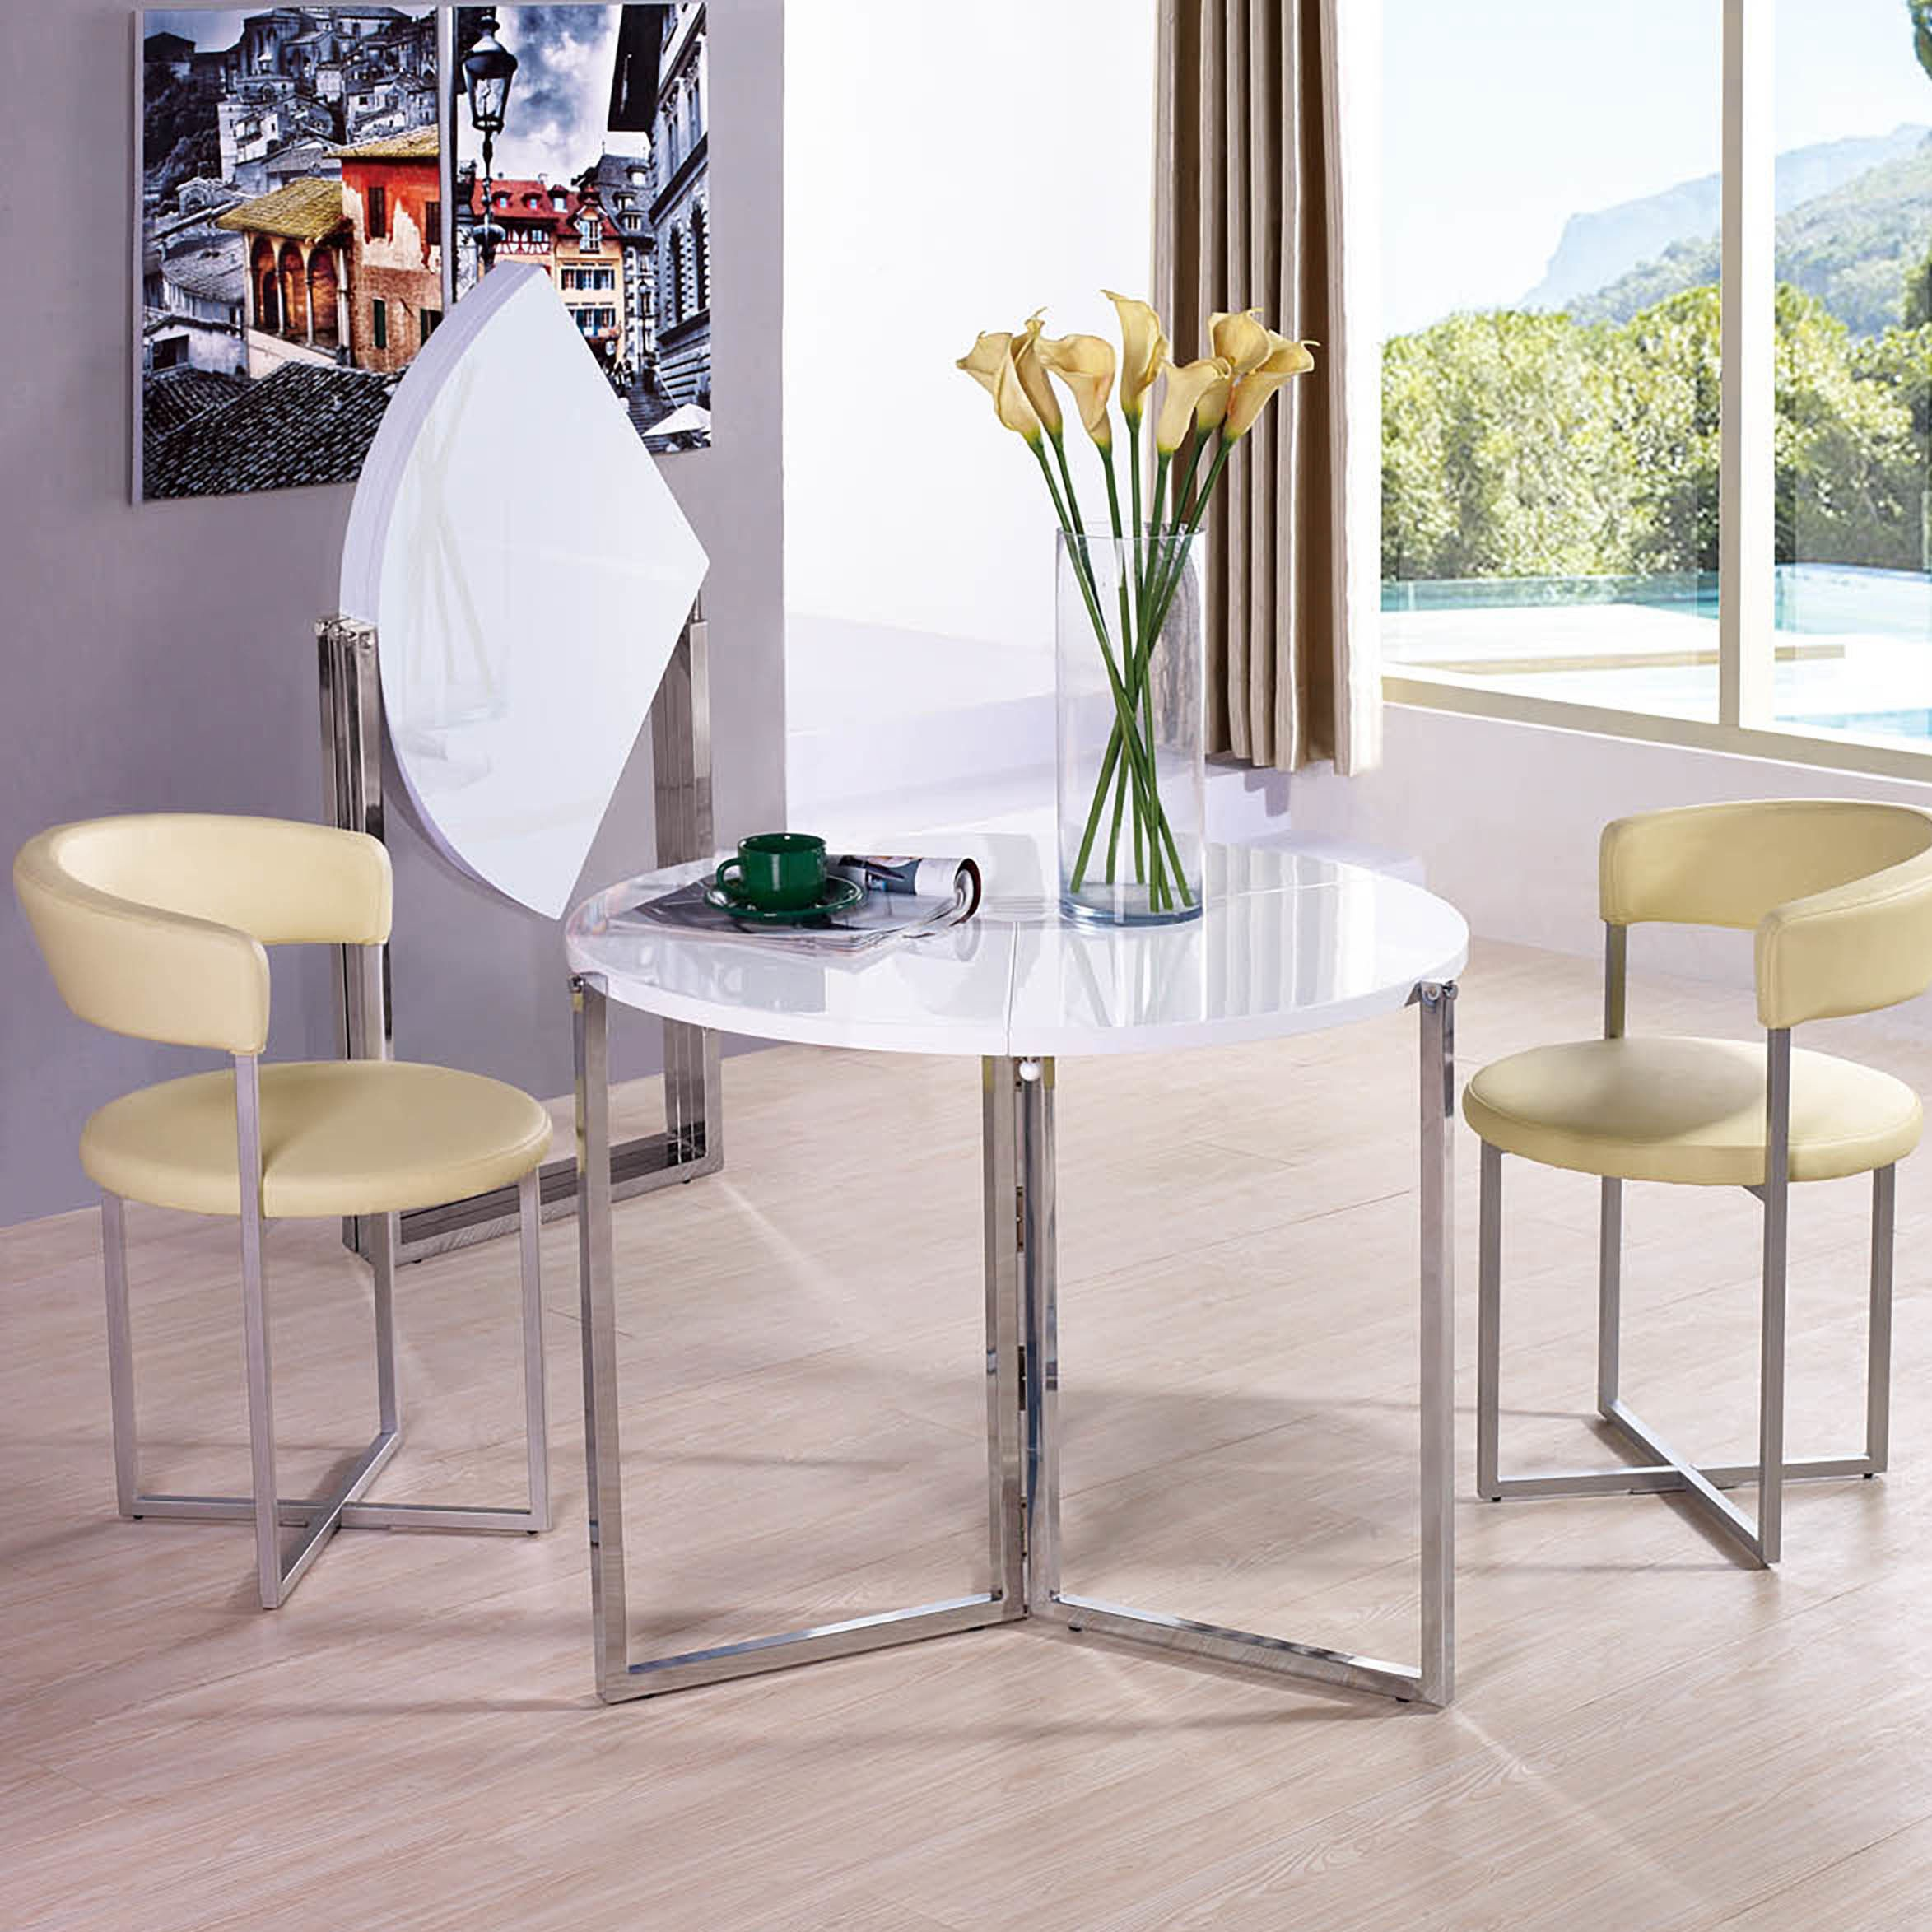 Radiant Circular Folding Table  Folding Tables And Corner Extraordinary Corner Dining Room Furniture Inspiration Design